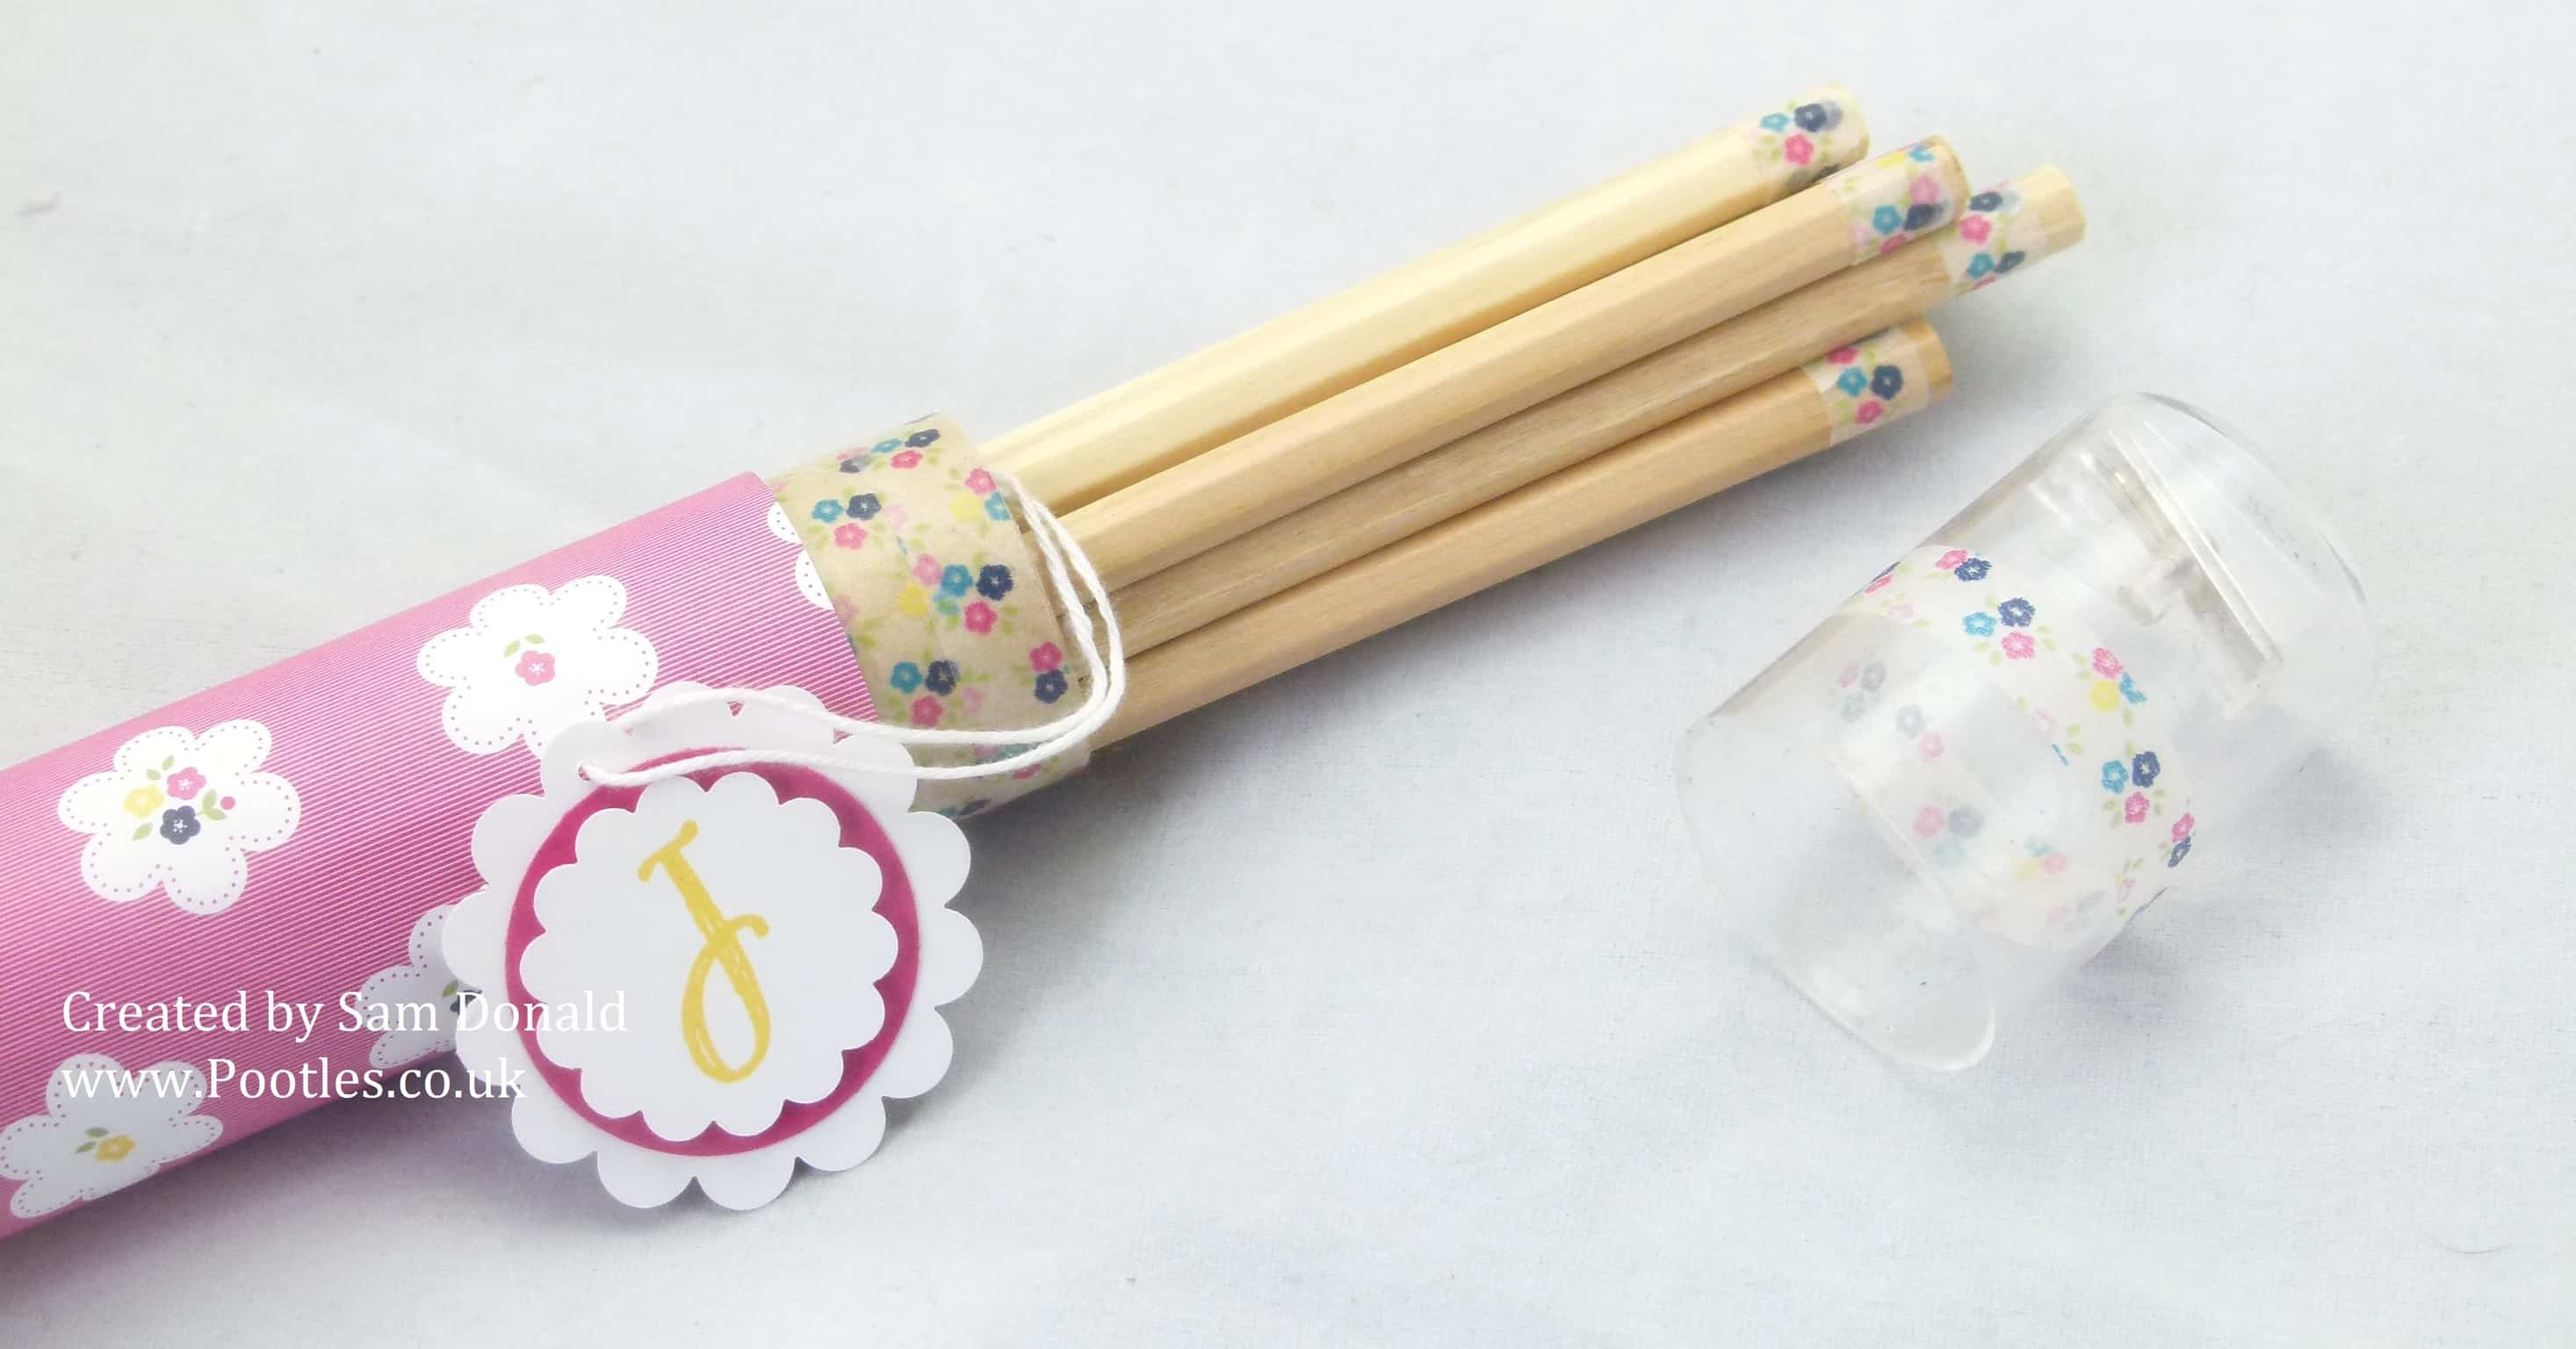 Pootles Stampin Up Gingham Garden Colouring Pencils 2 (1)